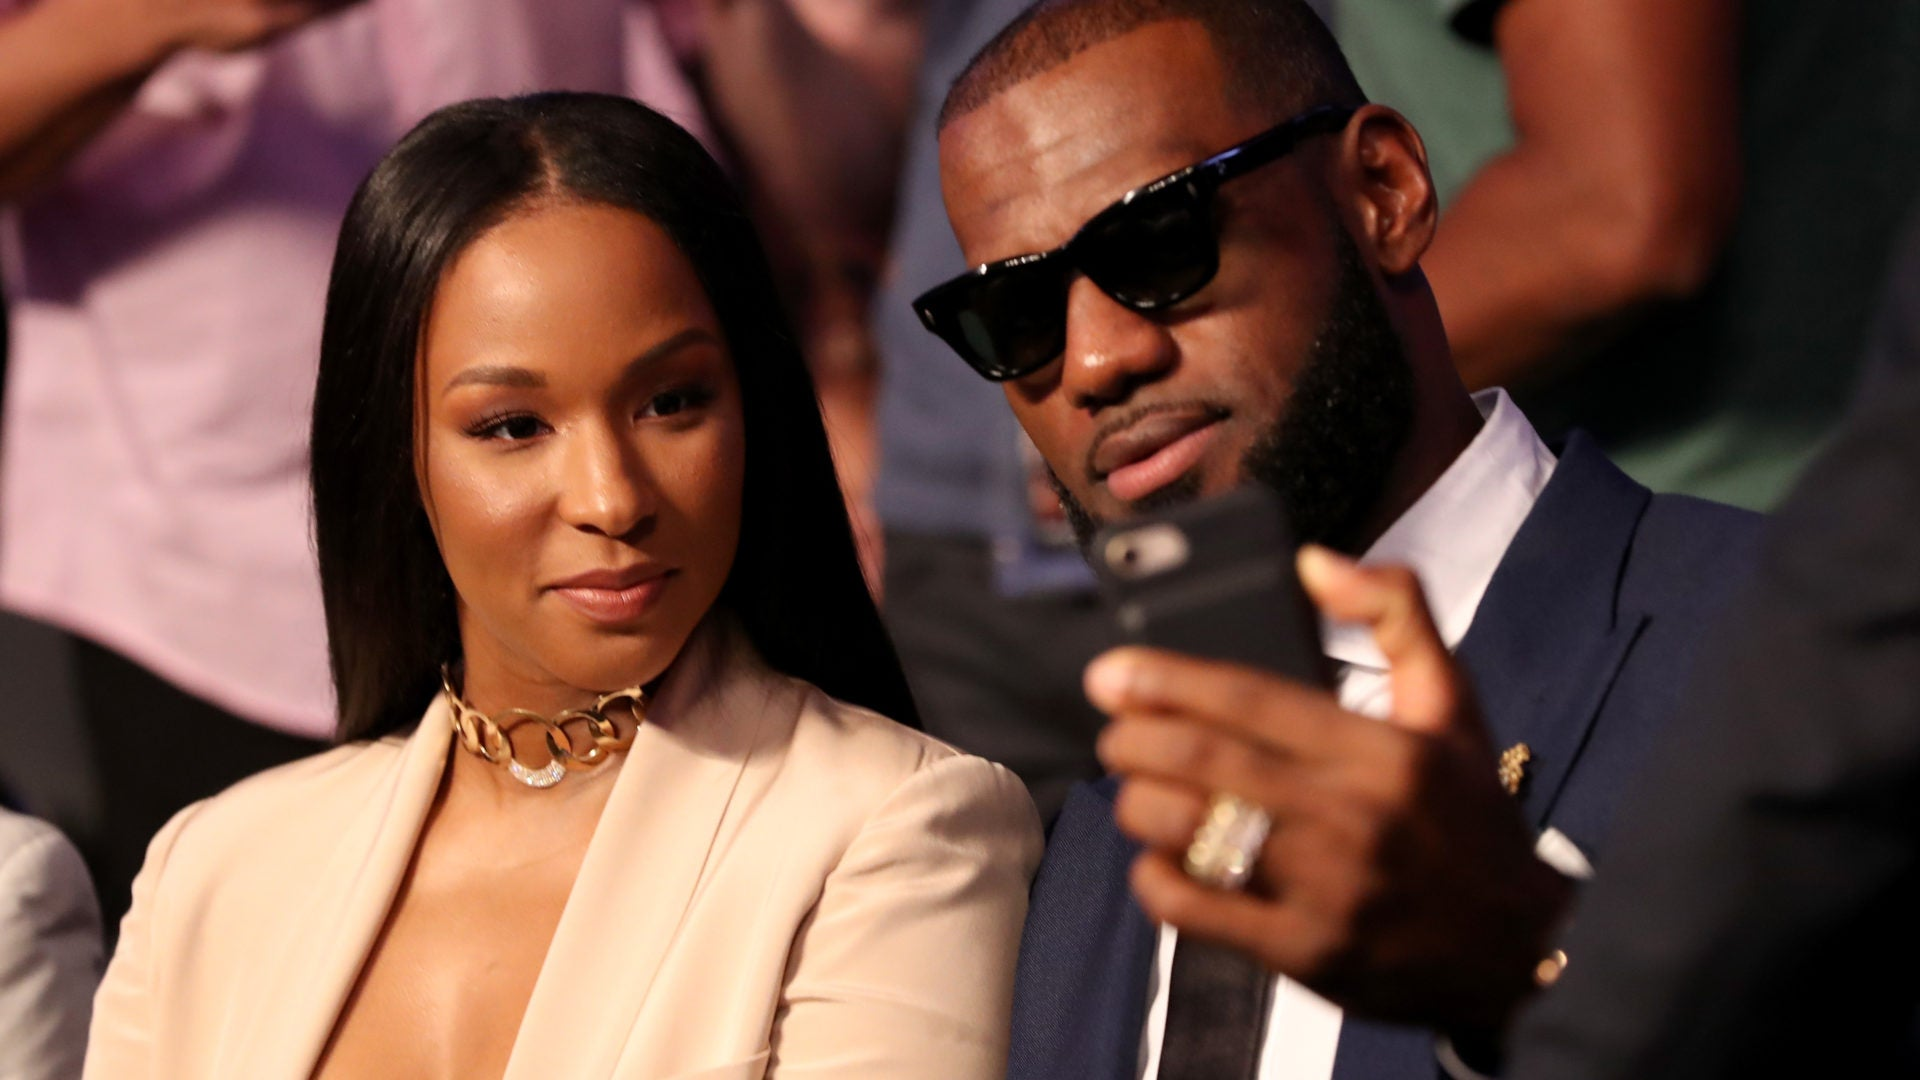 Savannah James and LeBron James